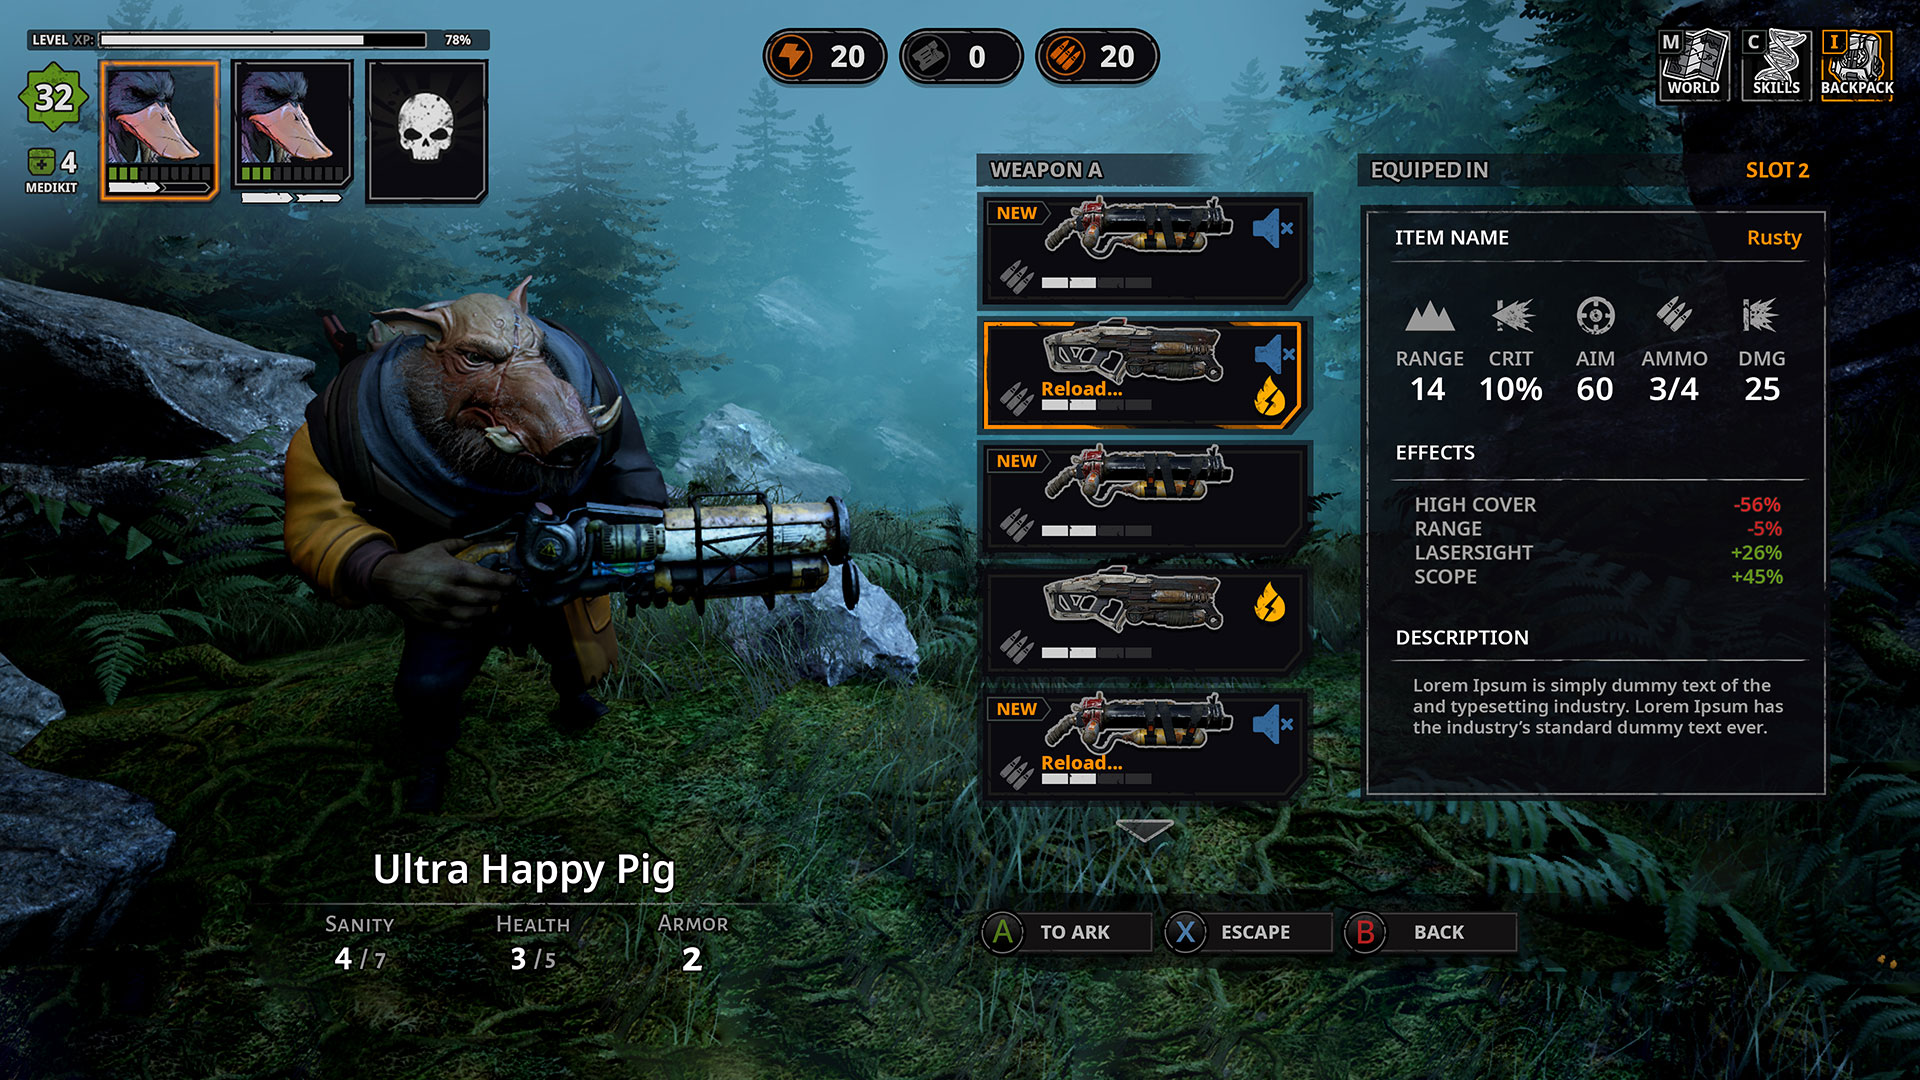 funcom-ui-gameinterface-gameart-roadtoeden-ps4-xbox-tactical-adventure-game-xcom-turn-based-gameux-game-experience-design02